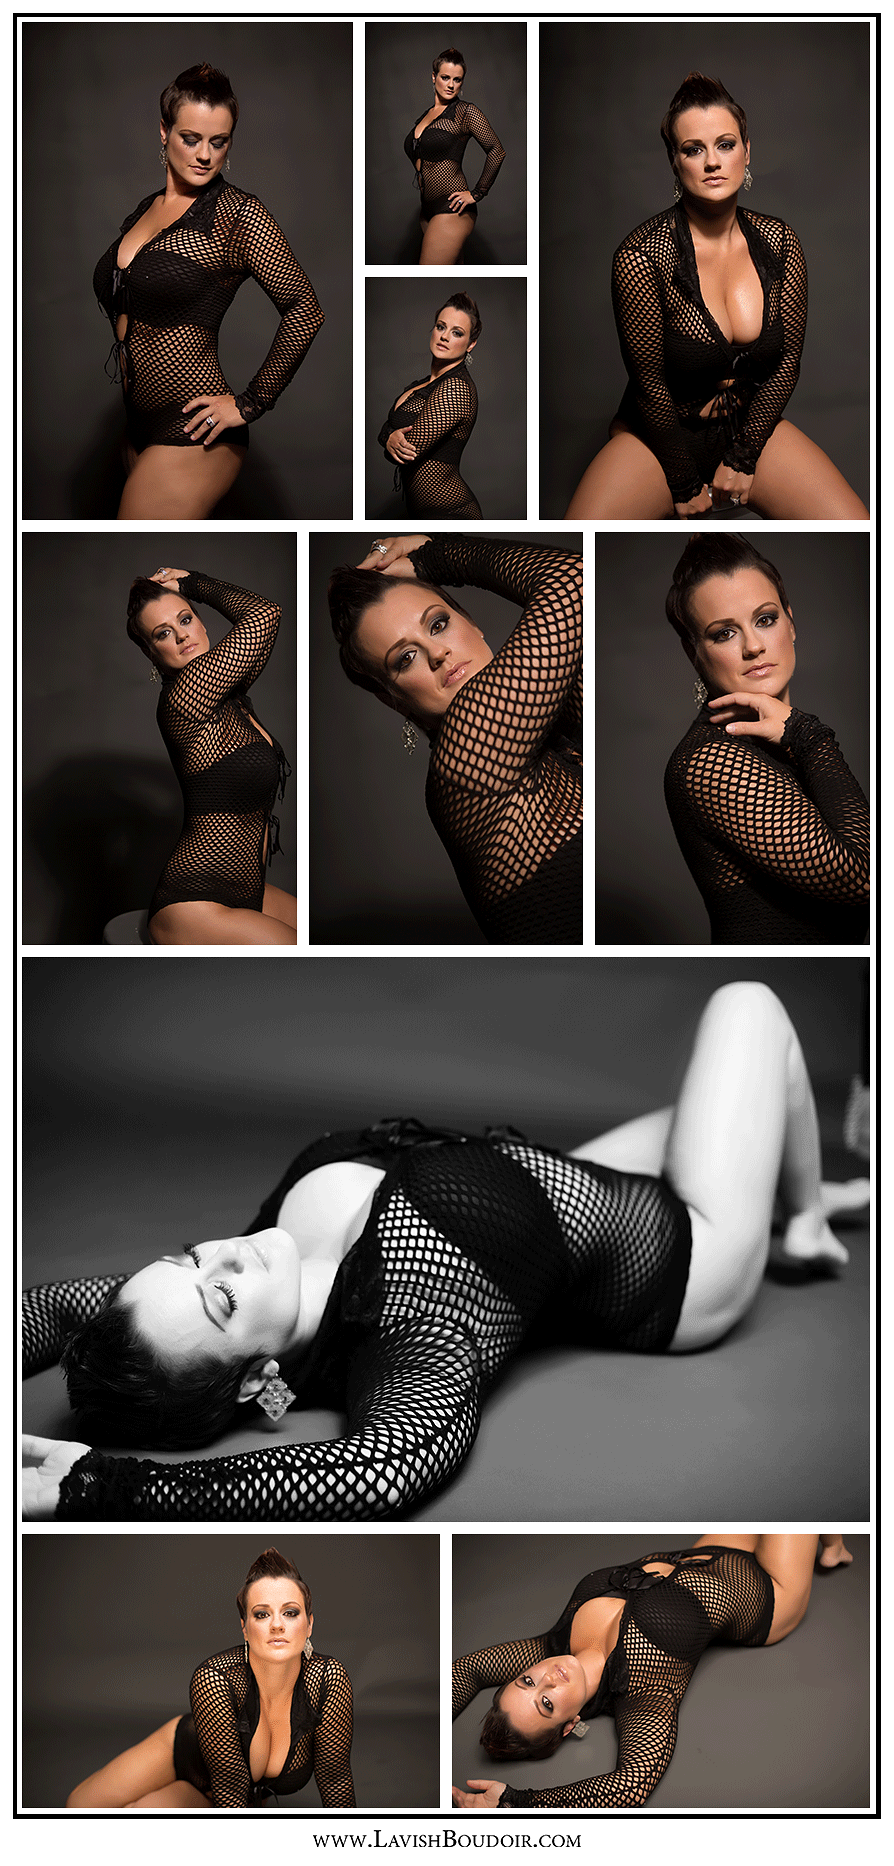 Copyright Leslie Cersovski @ Lavish Boudoir www.LavishBoudoir... - Valdosta - Georgia - all rights reserved fishnet, model, badass